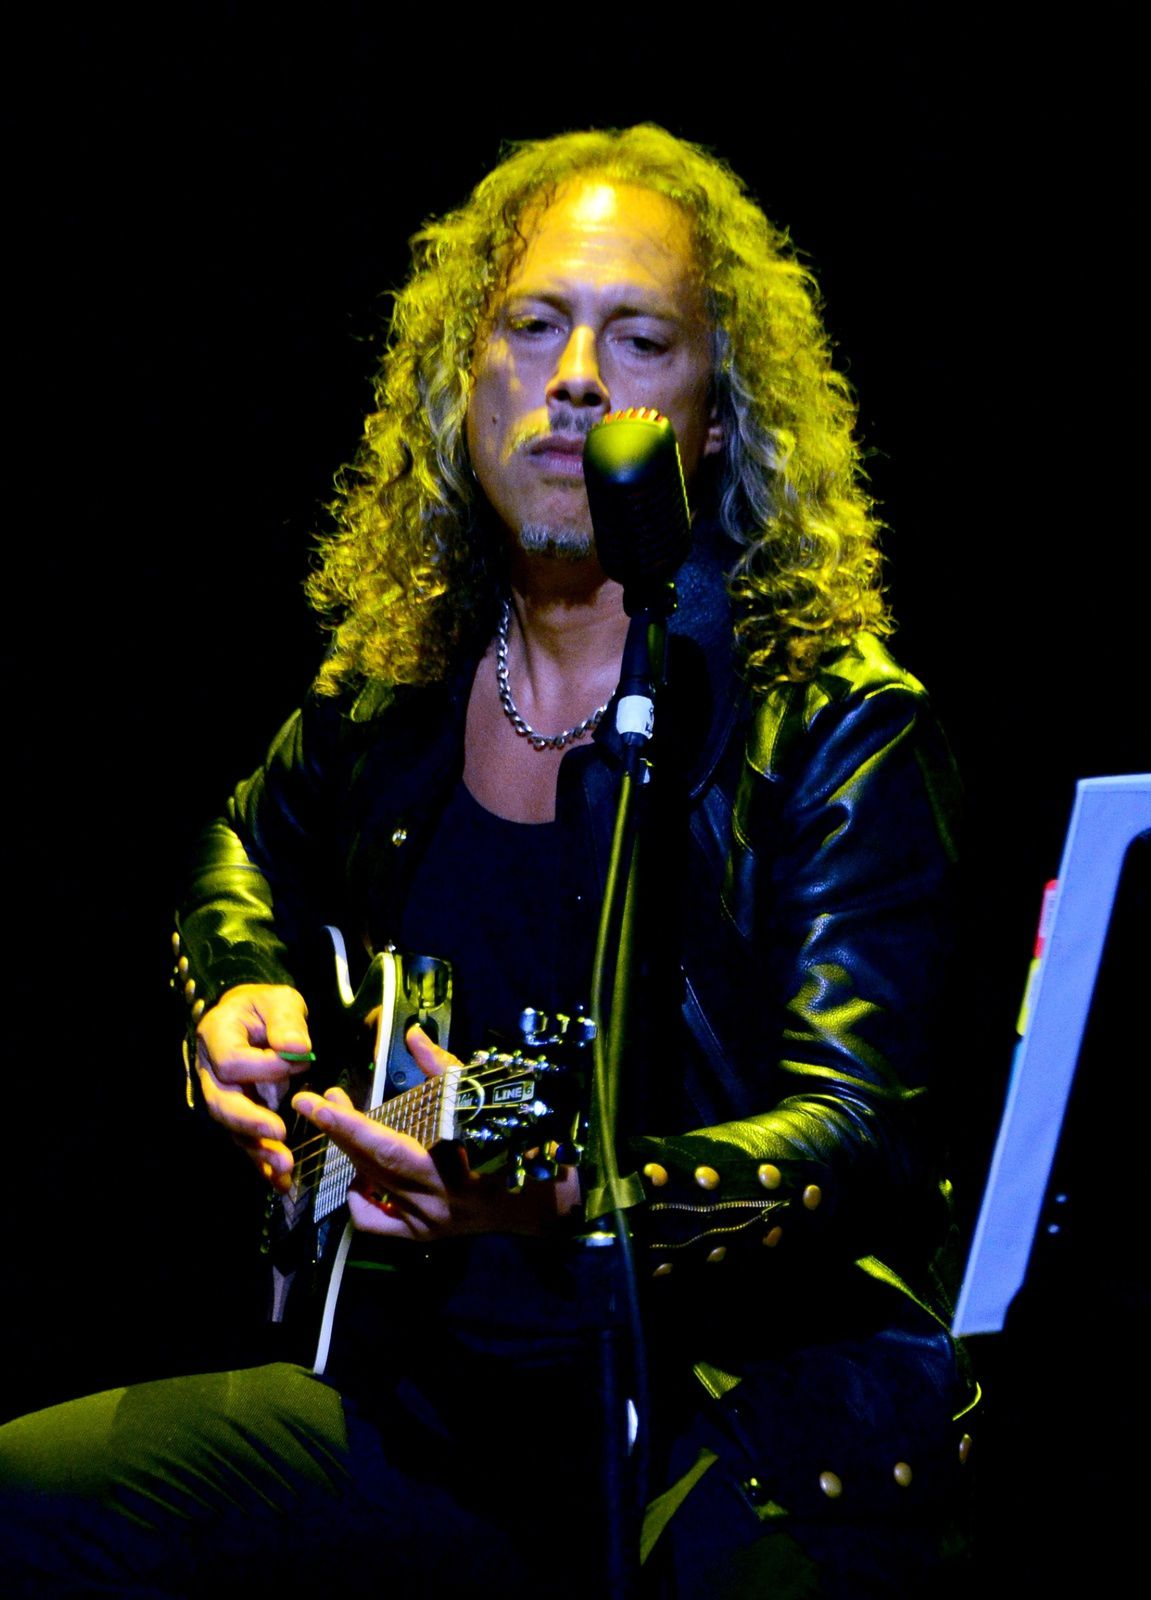 Kirk Hammett of Metallica performs onstage at the 10th annual MusiCares MAP Fund Benefit Concert at Club Nokia on May 12, 2014 in Los Angeles, California. (Photo by Frazer Harrison/Getty Images)